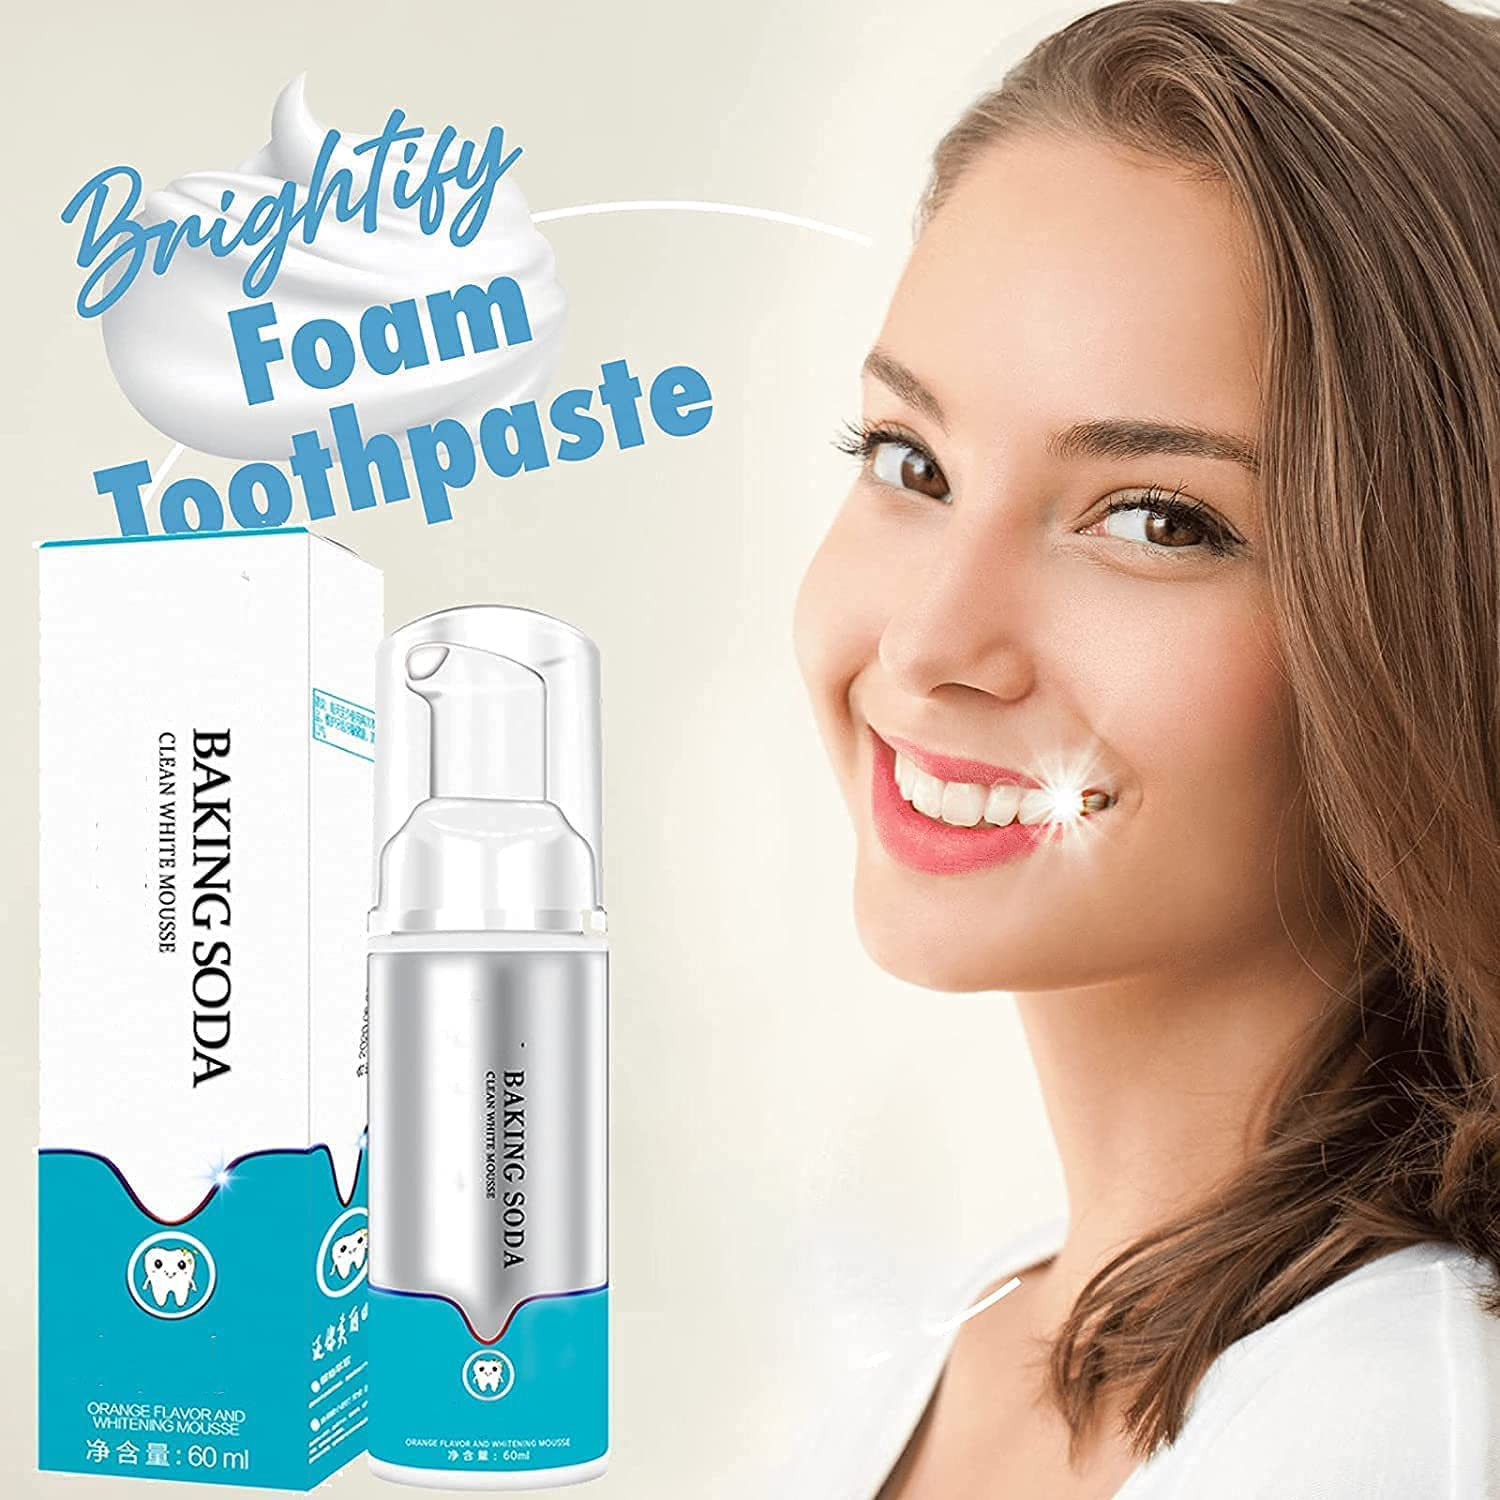 Brightify Deep Phoenix Mall Cleaning Foam In a popularity Cleansing Fo Toothpaste